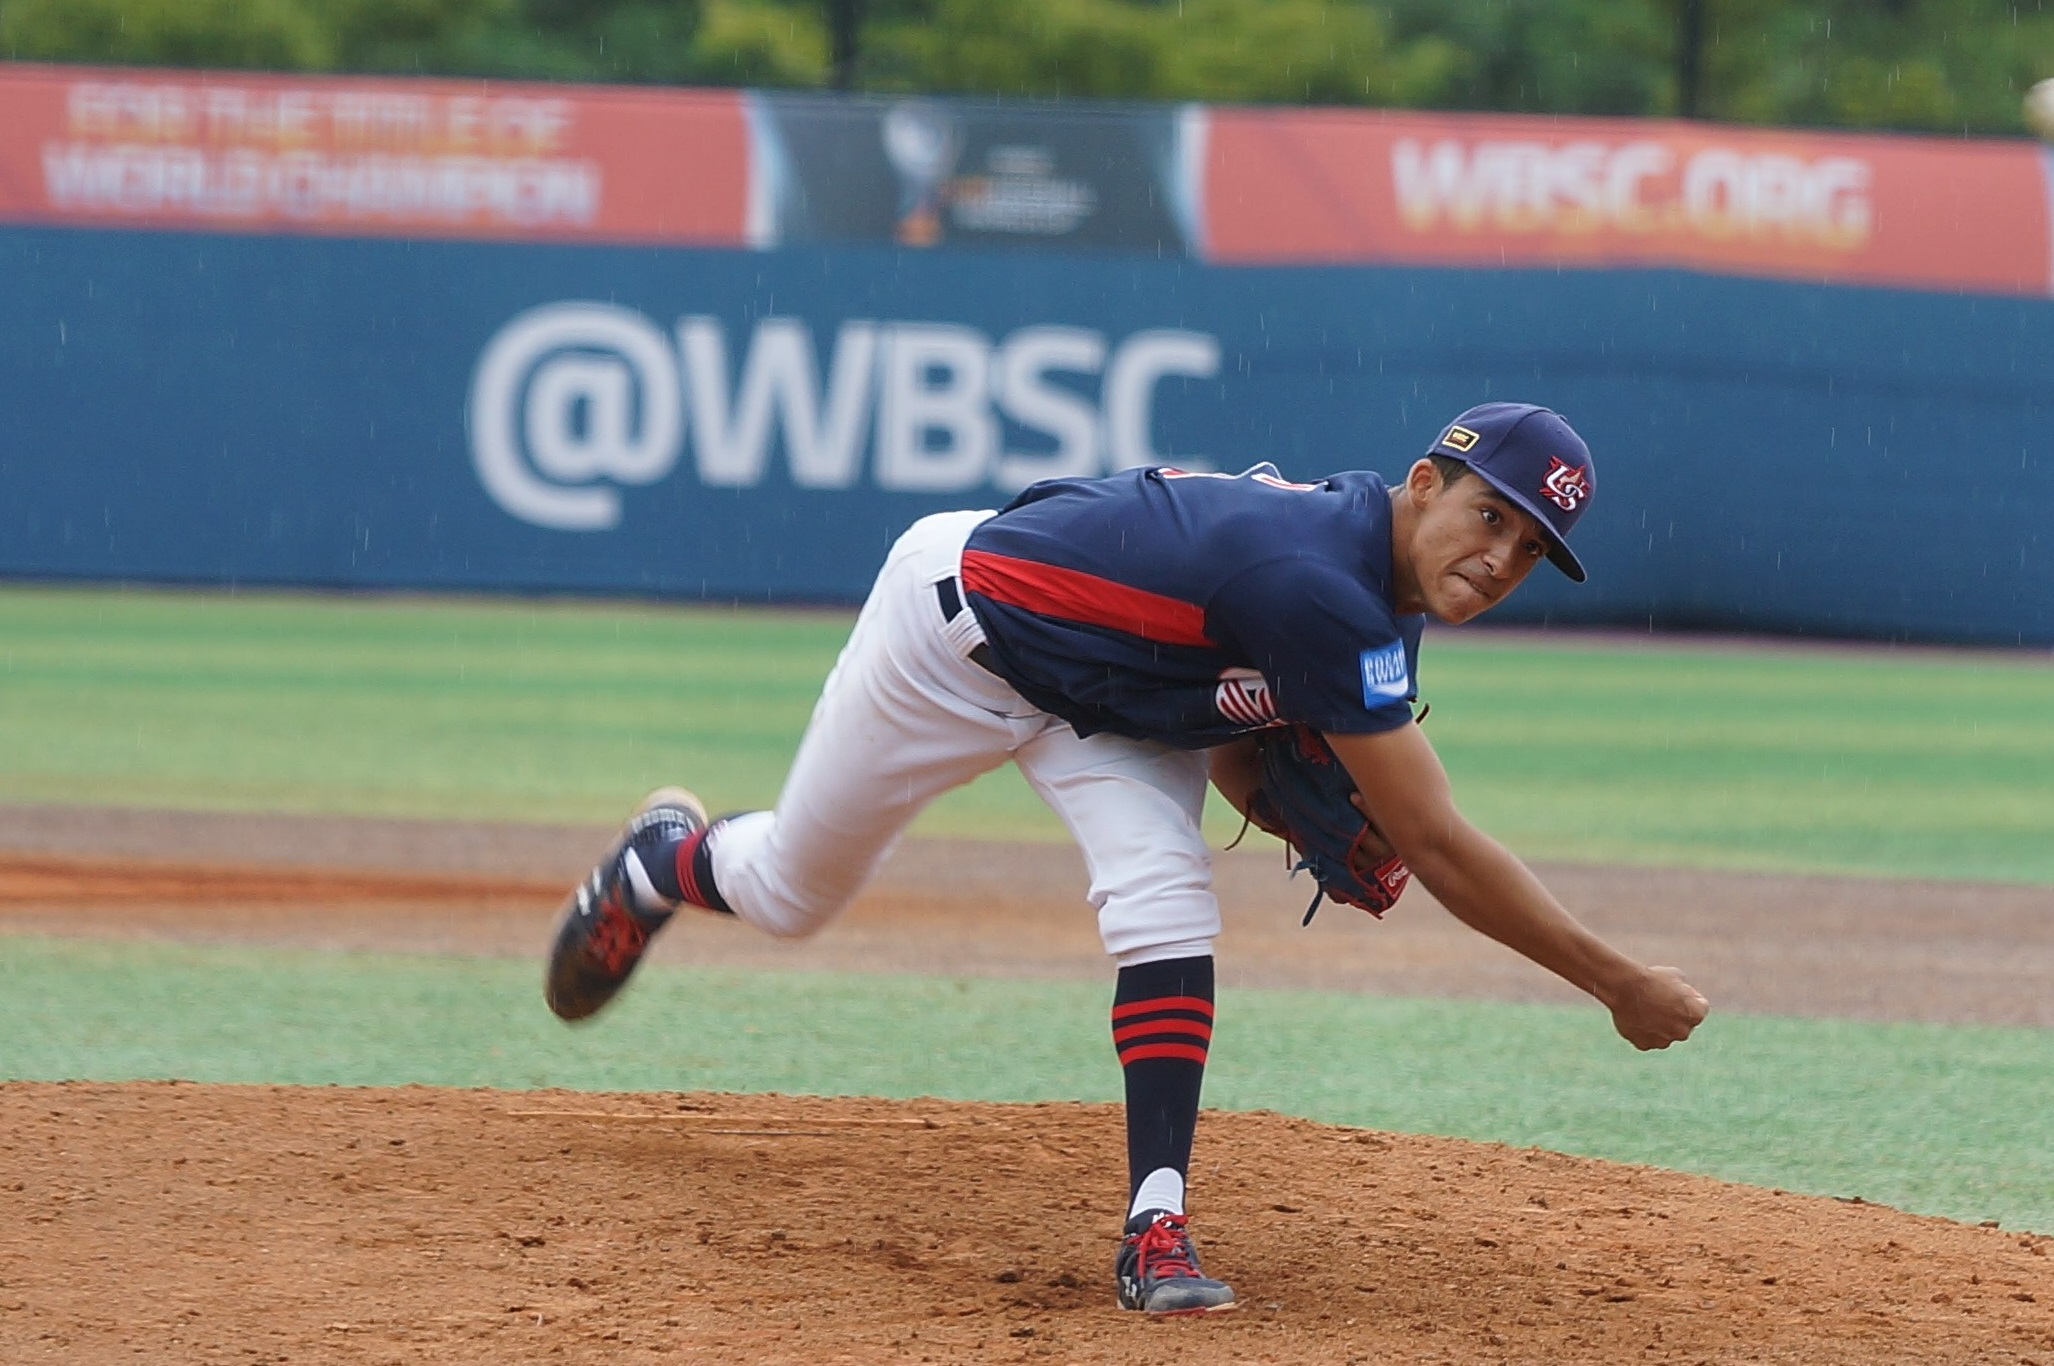 The USA gave the call to Alejandro Rosario, another flame thrower